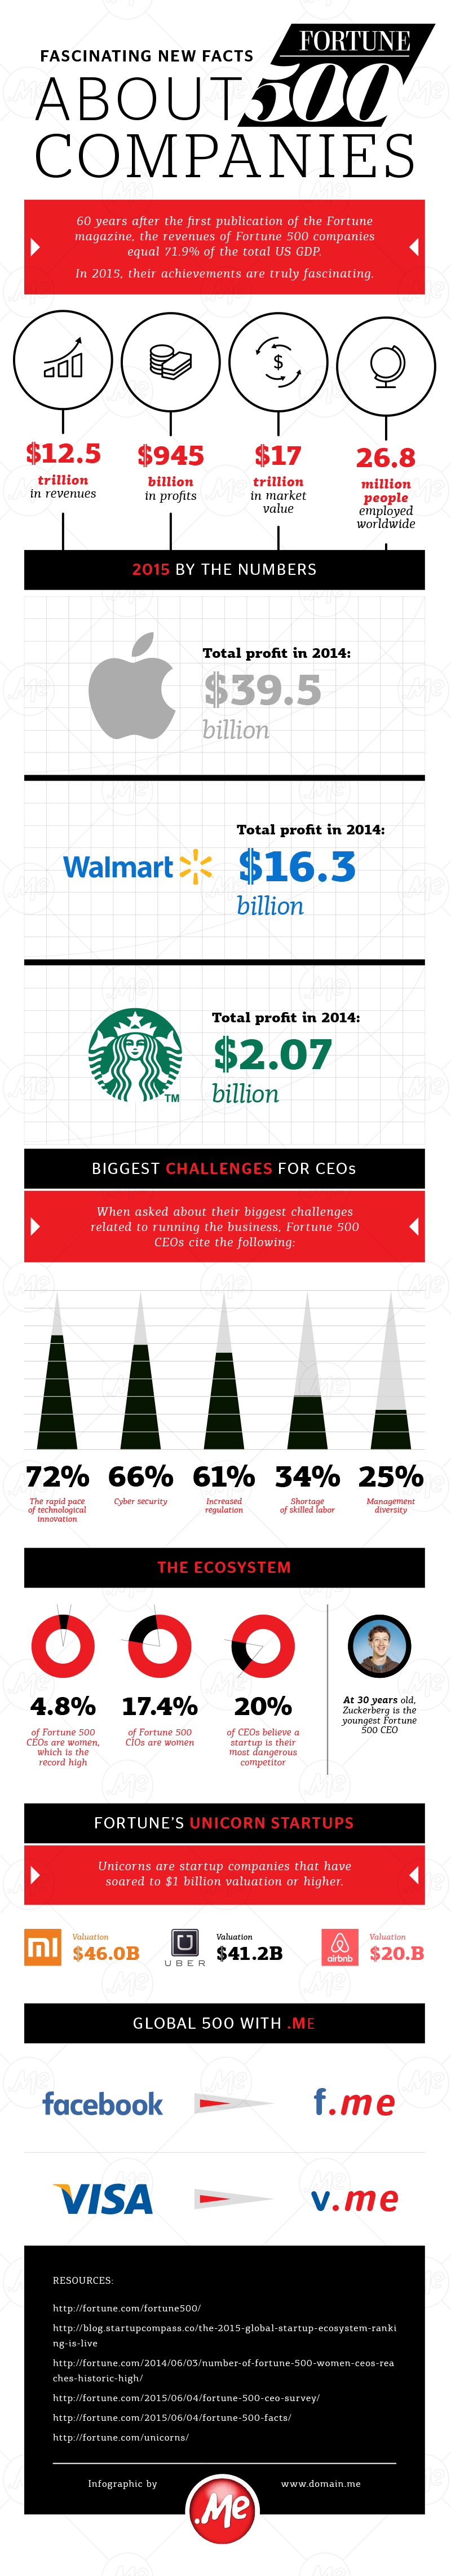 Infographic - Fascinating new facts about Fortune 500 companies